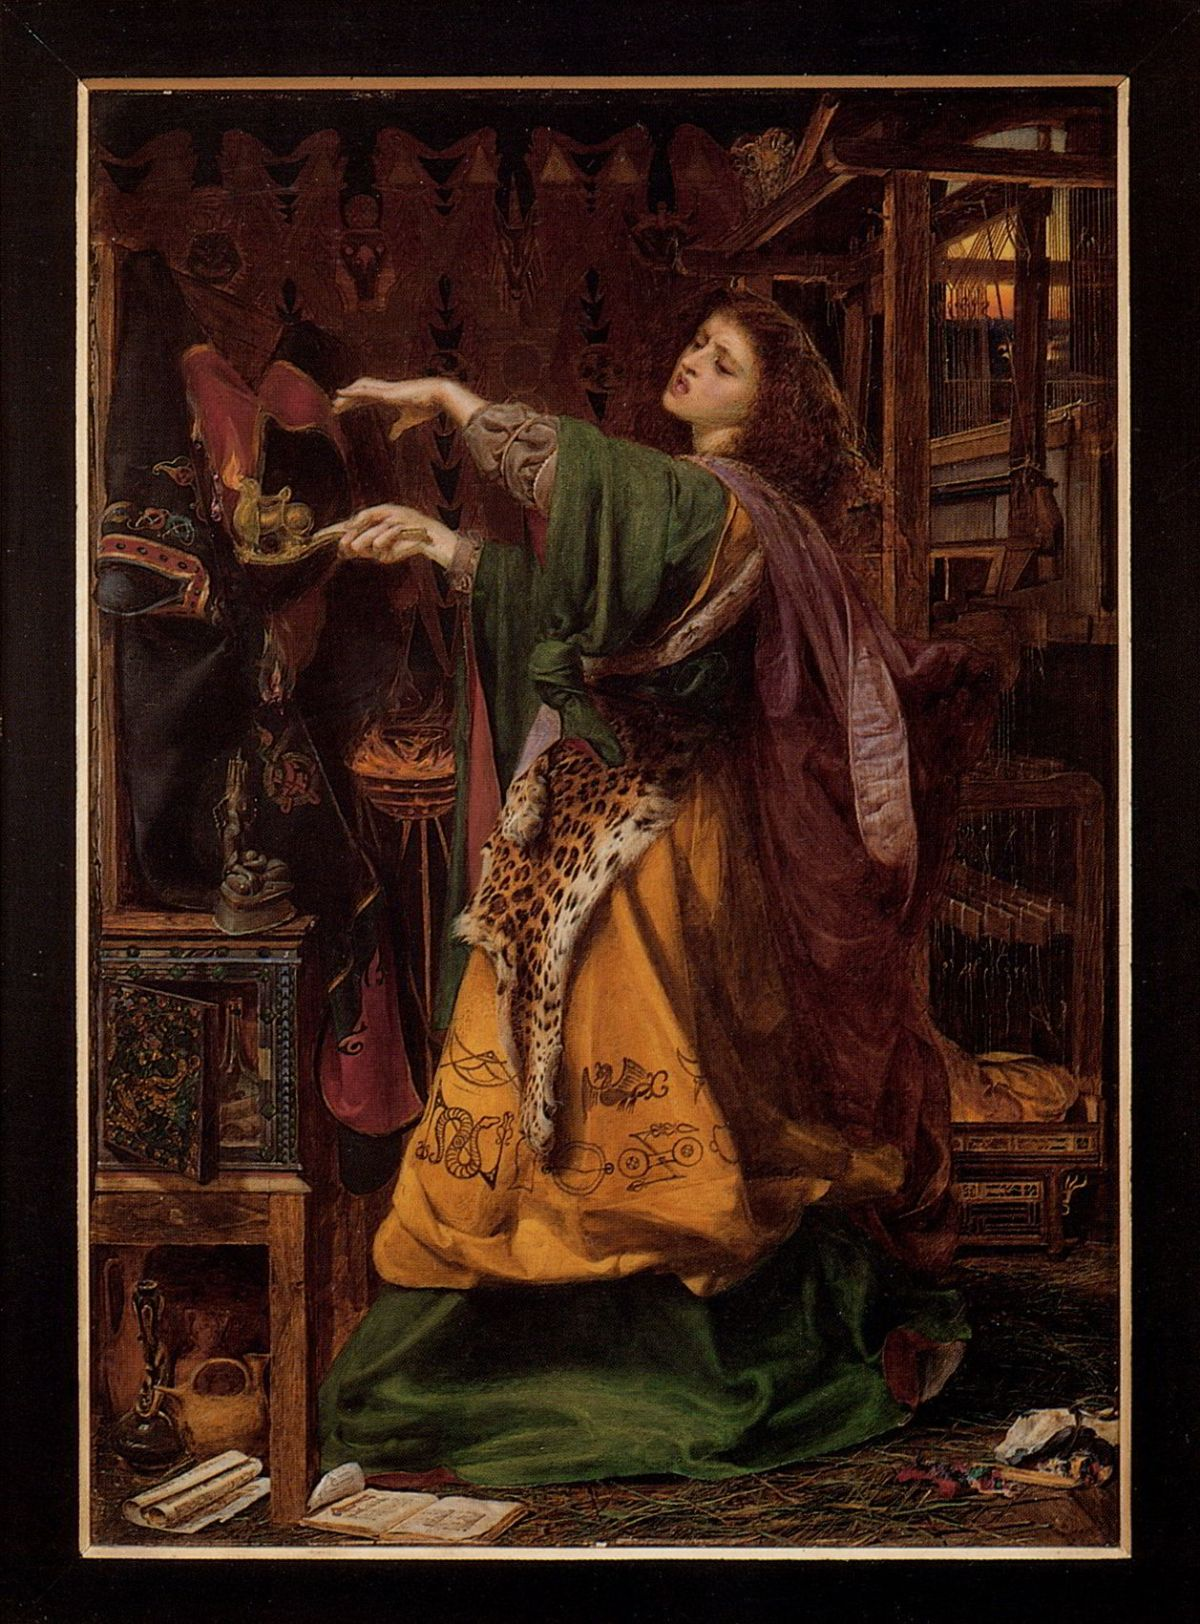 Morgan le Fay by Anthony Frederick Sandys